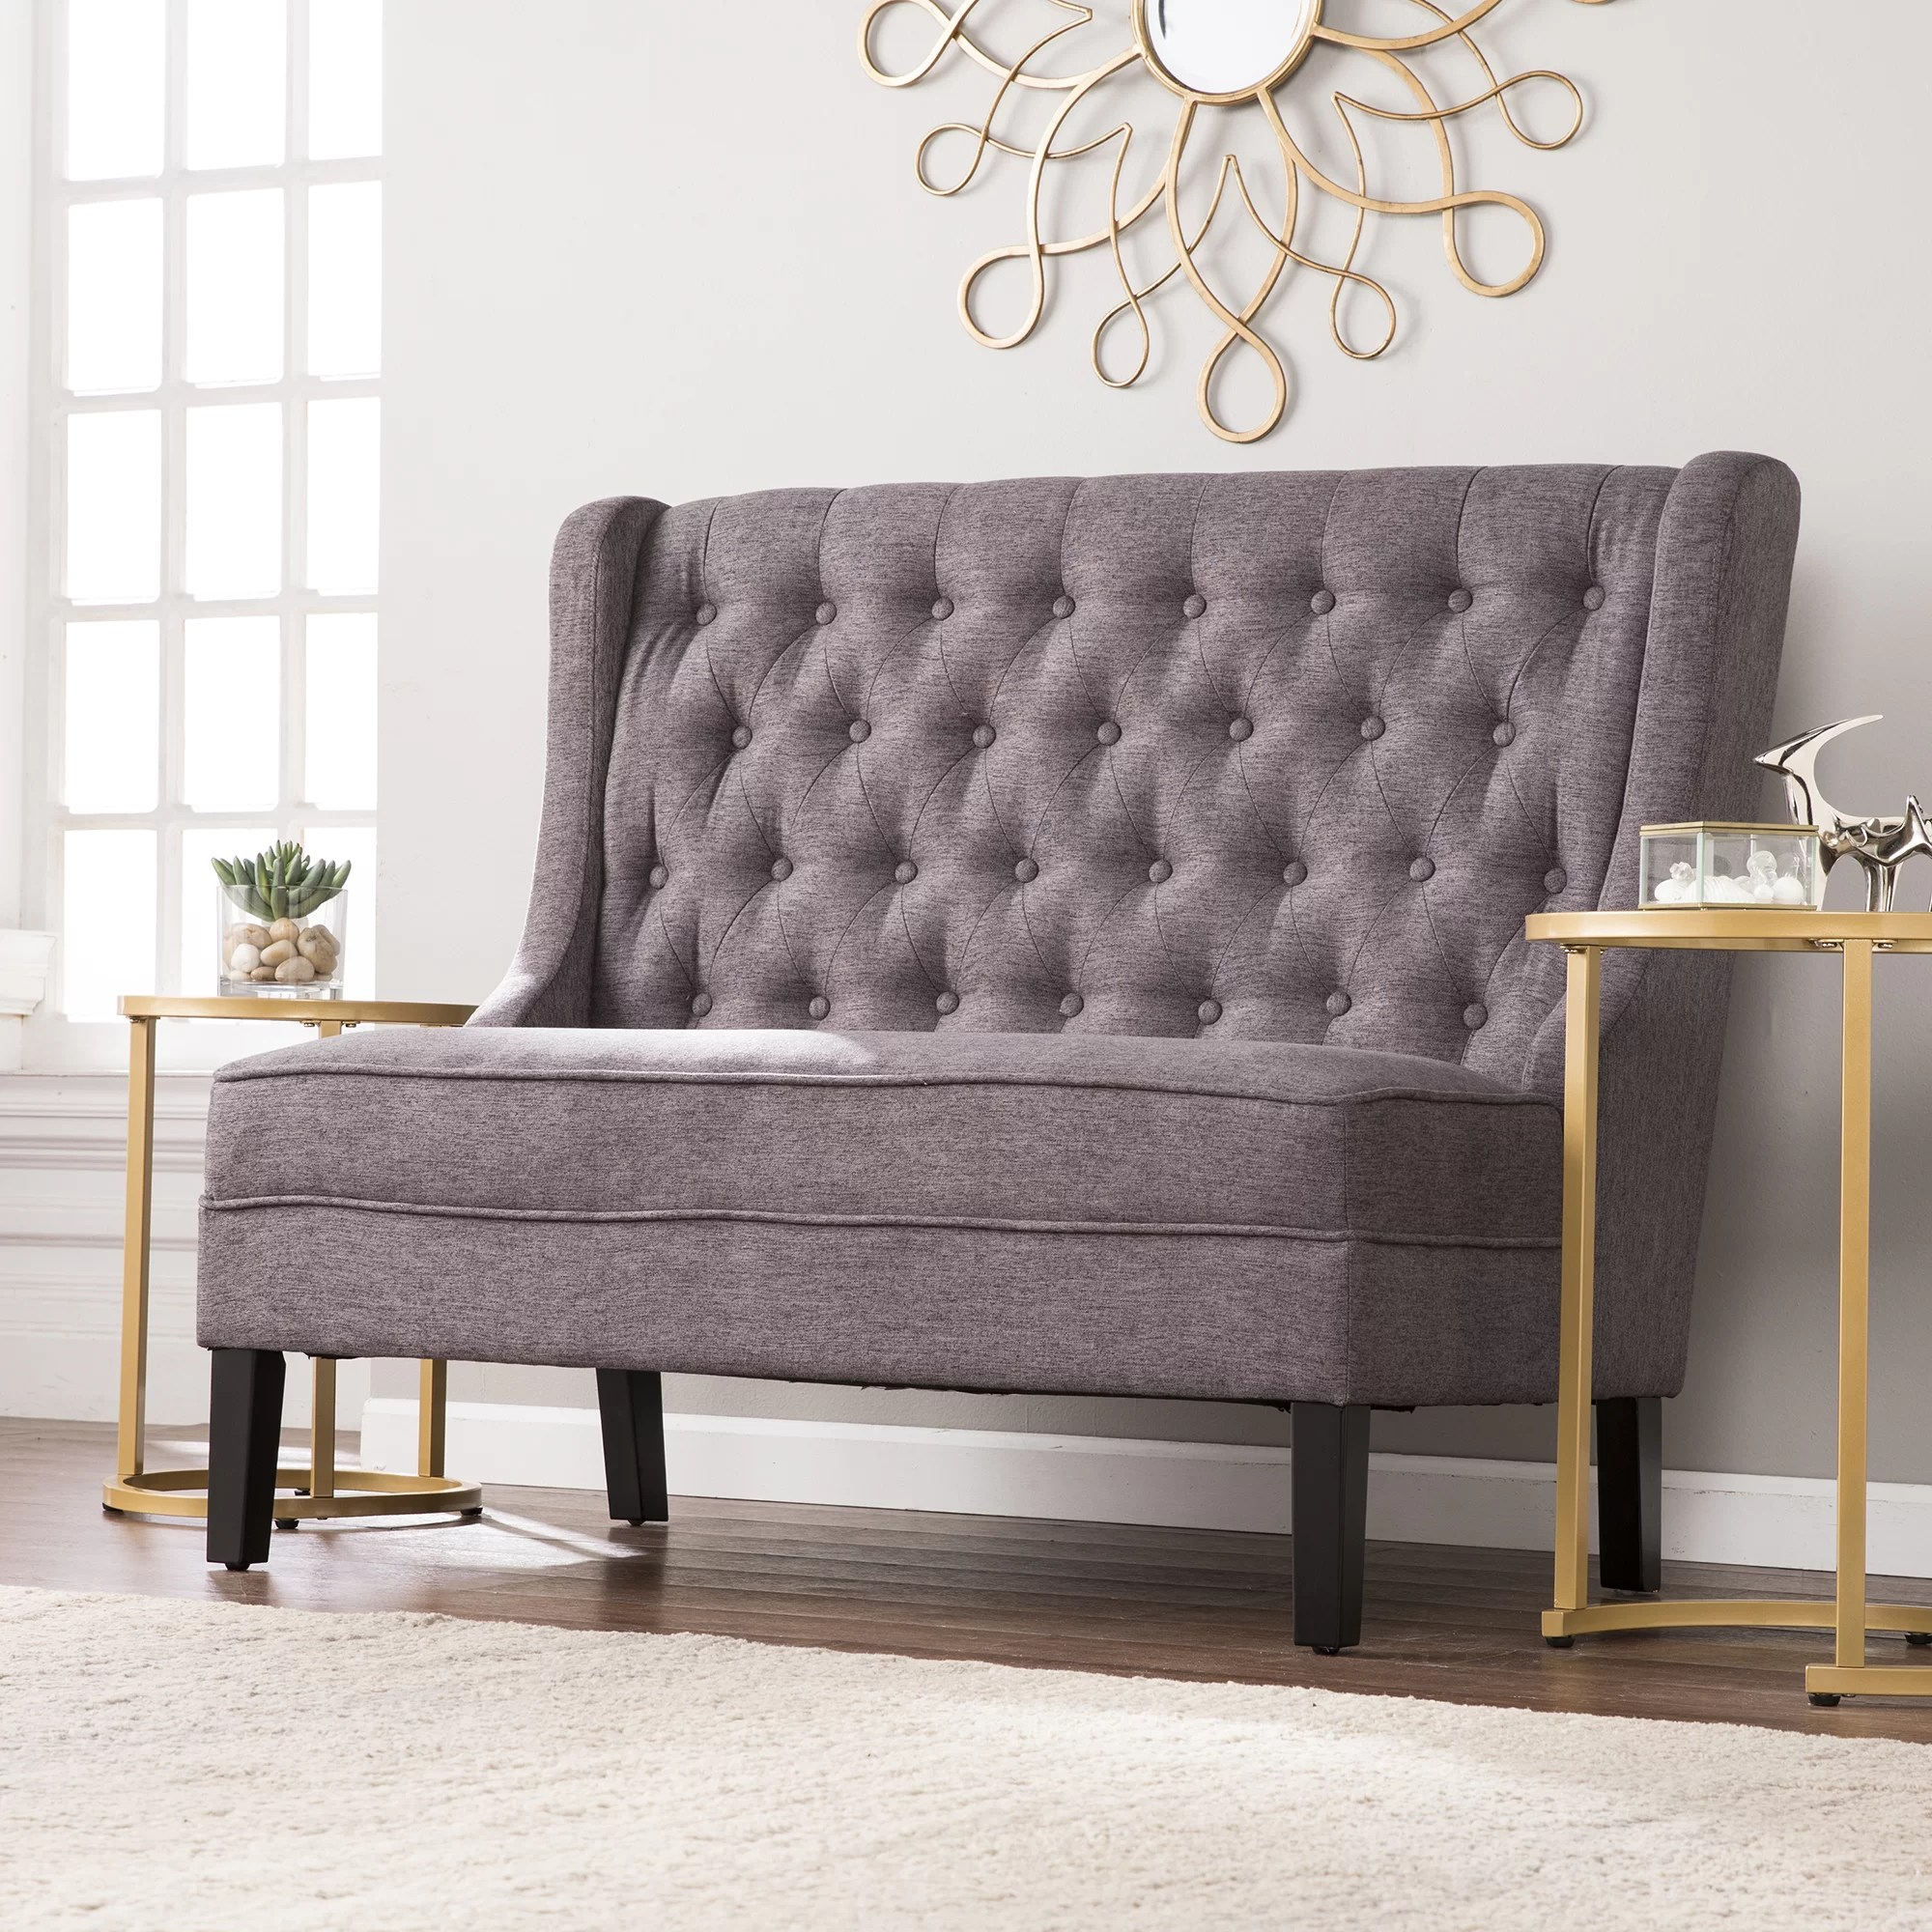 living room settee benches brown furniture sets alcott hill halpin high back tufted bench reviews wayfair